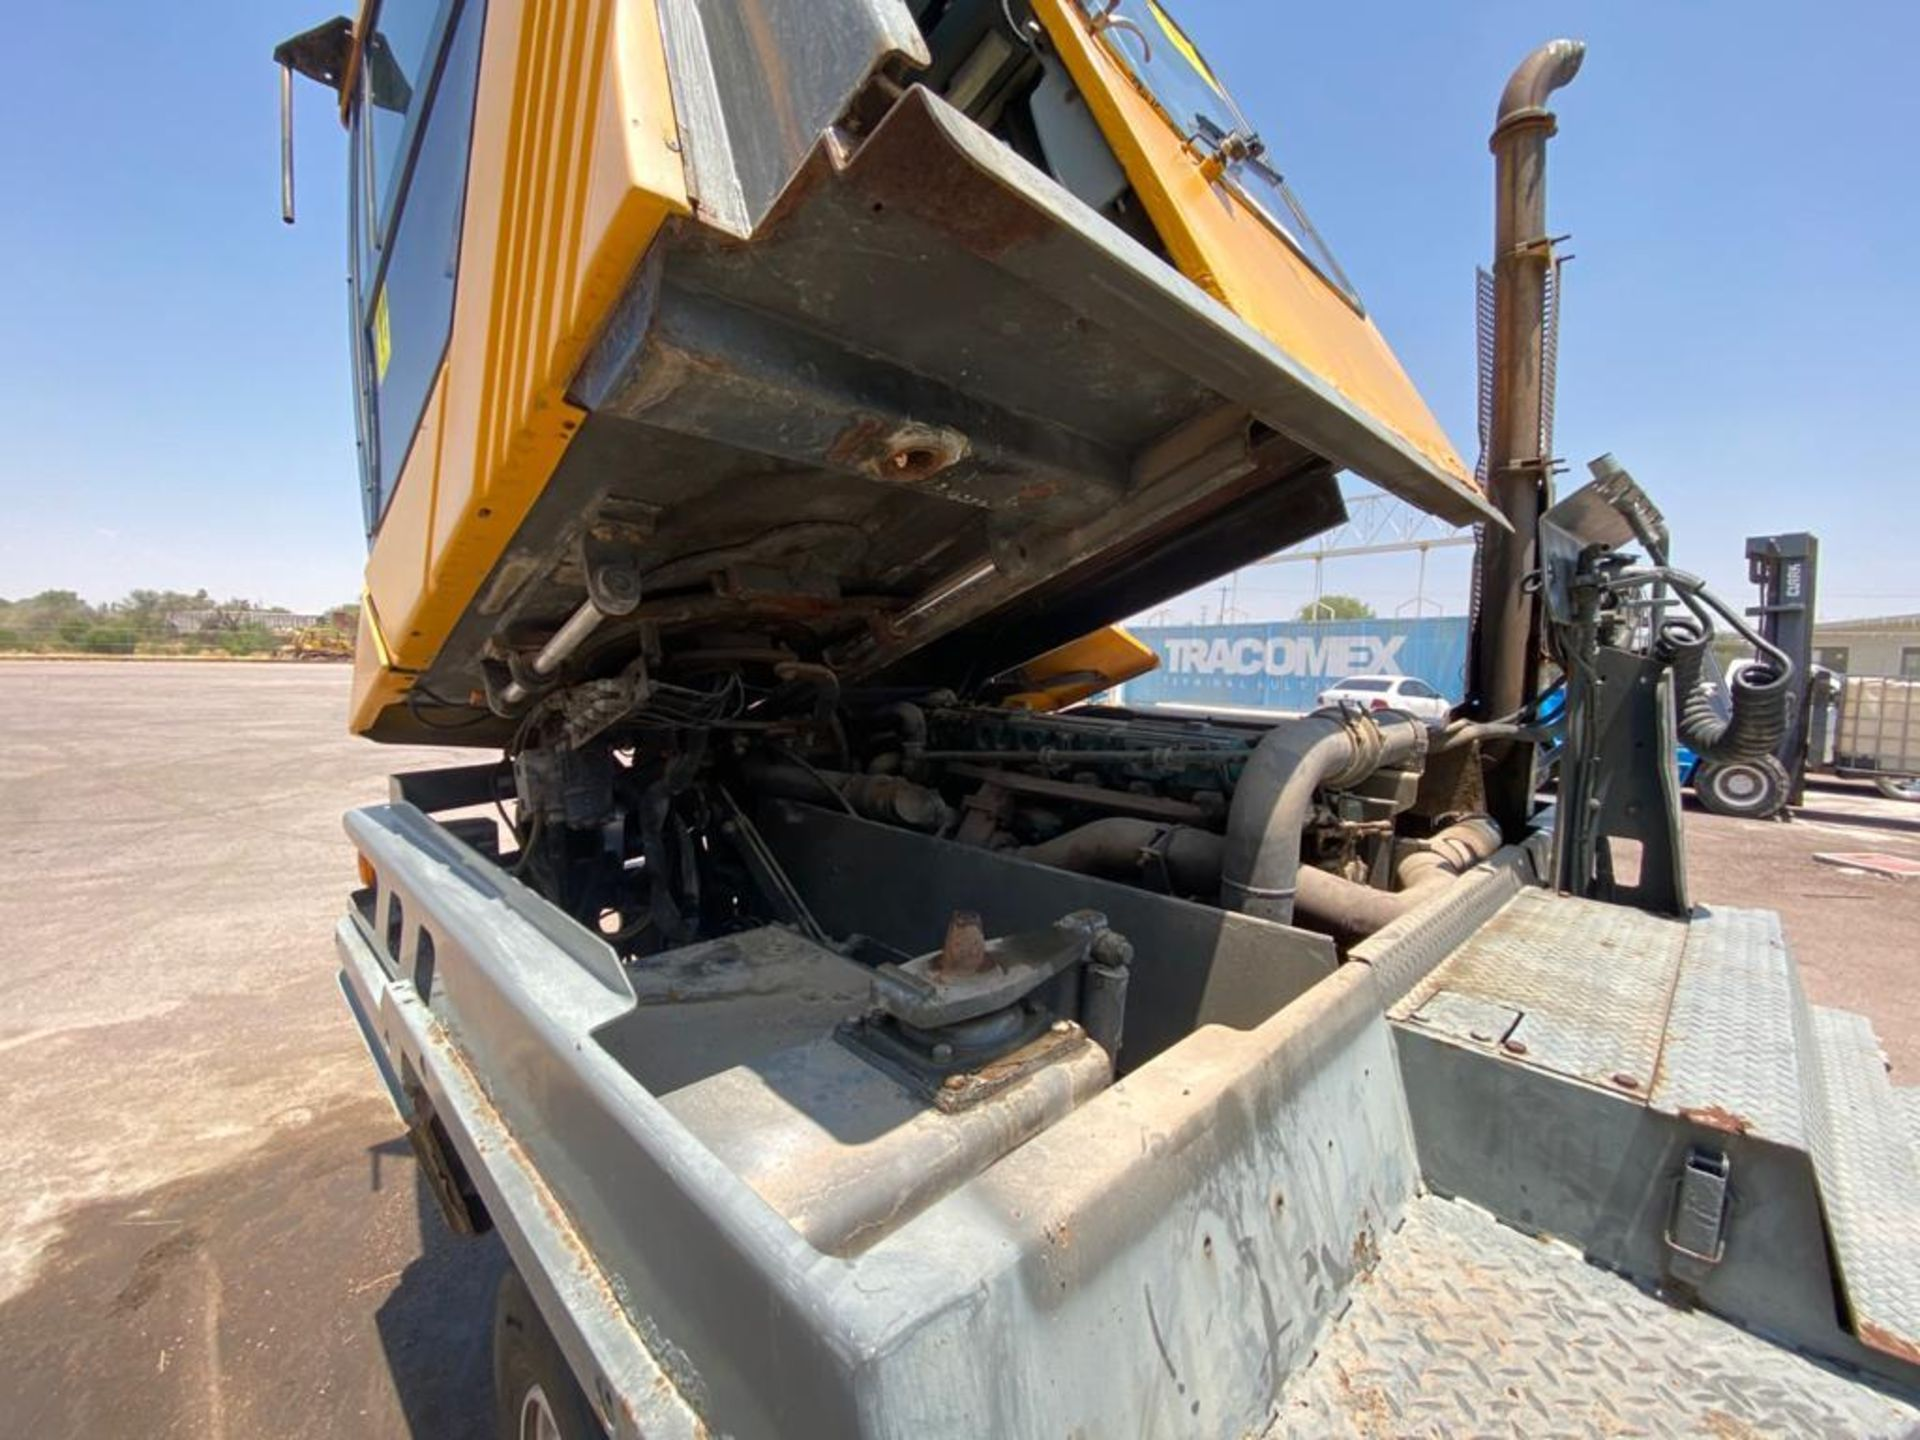 Terberg Capacity 2002 Terminal Tractor, automatic transmission, with Volvo motor - Image 50 of 57